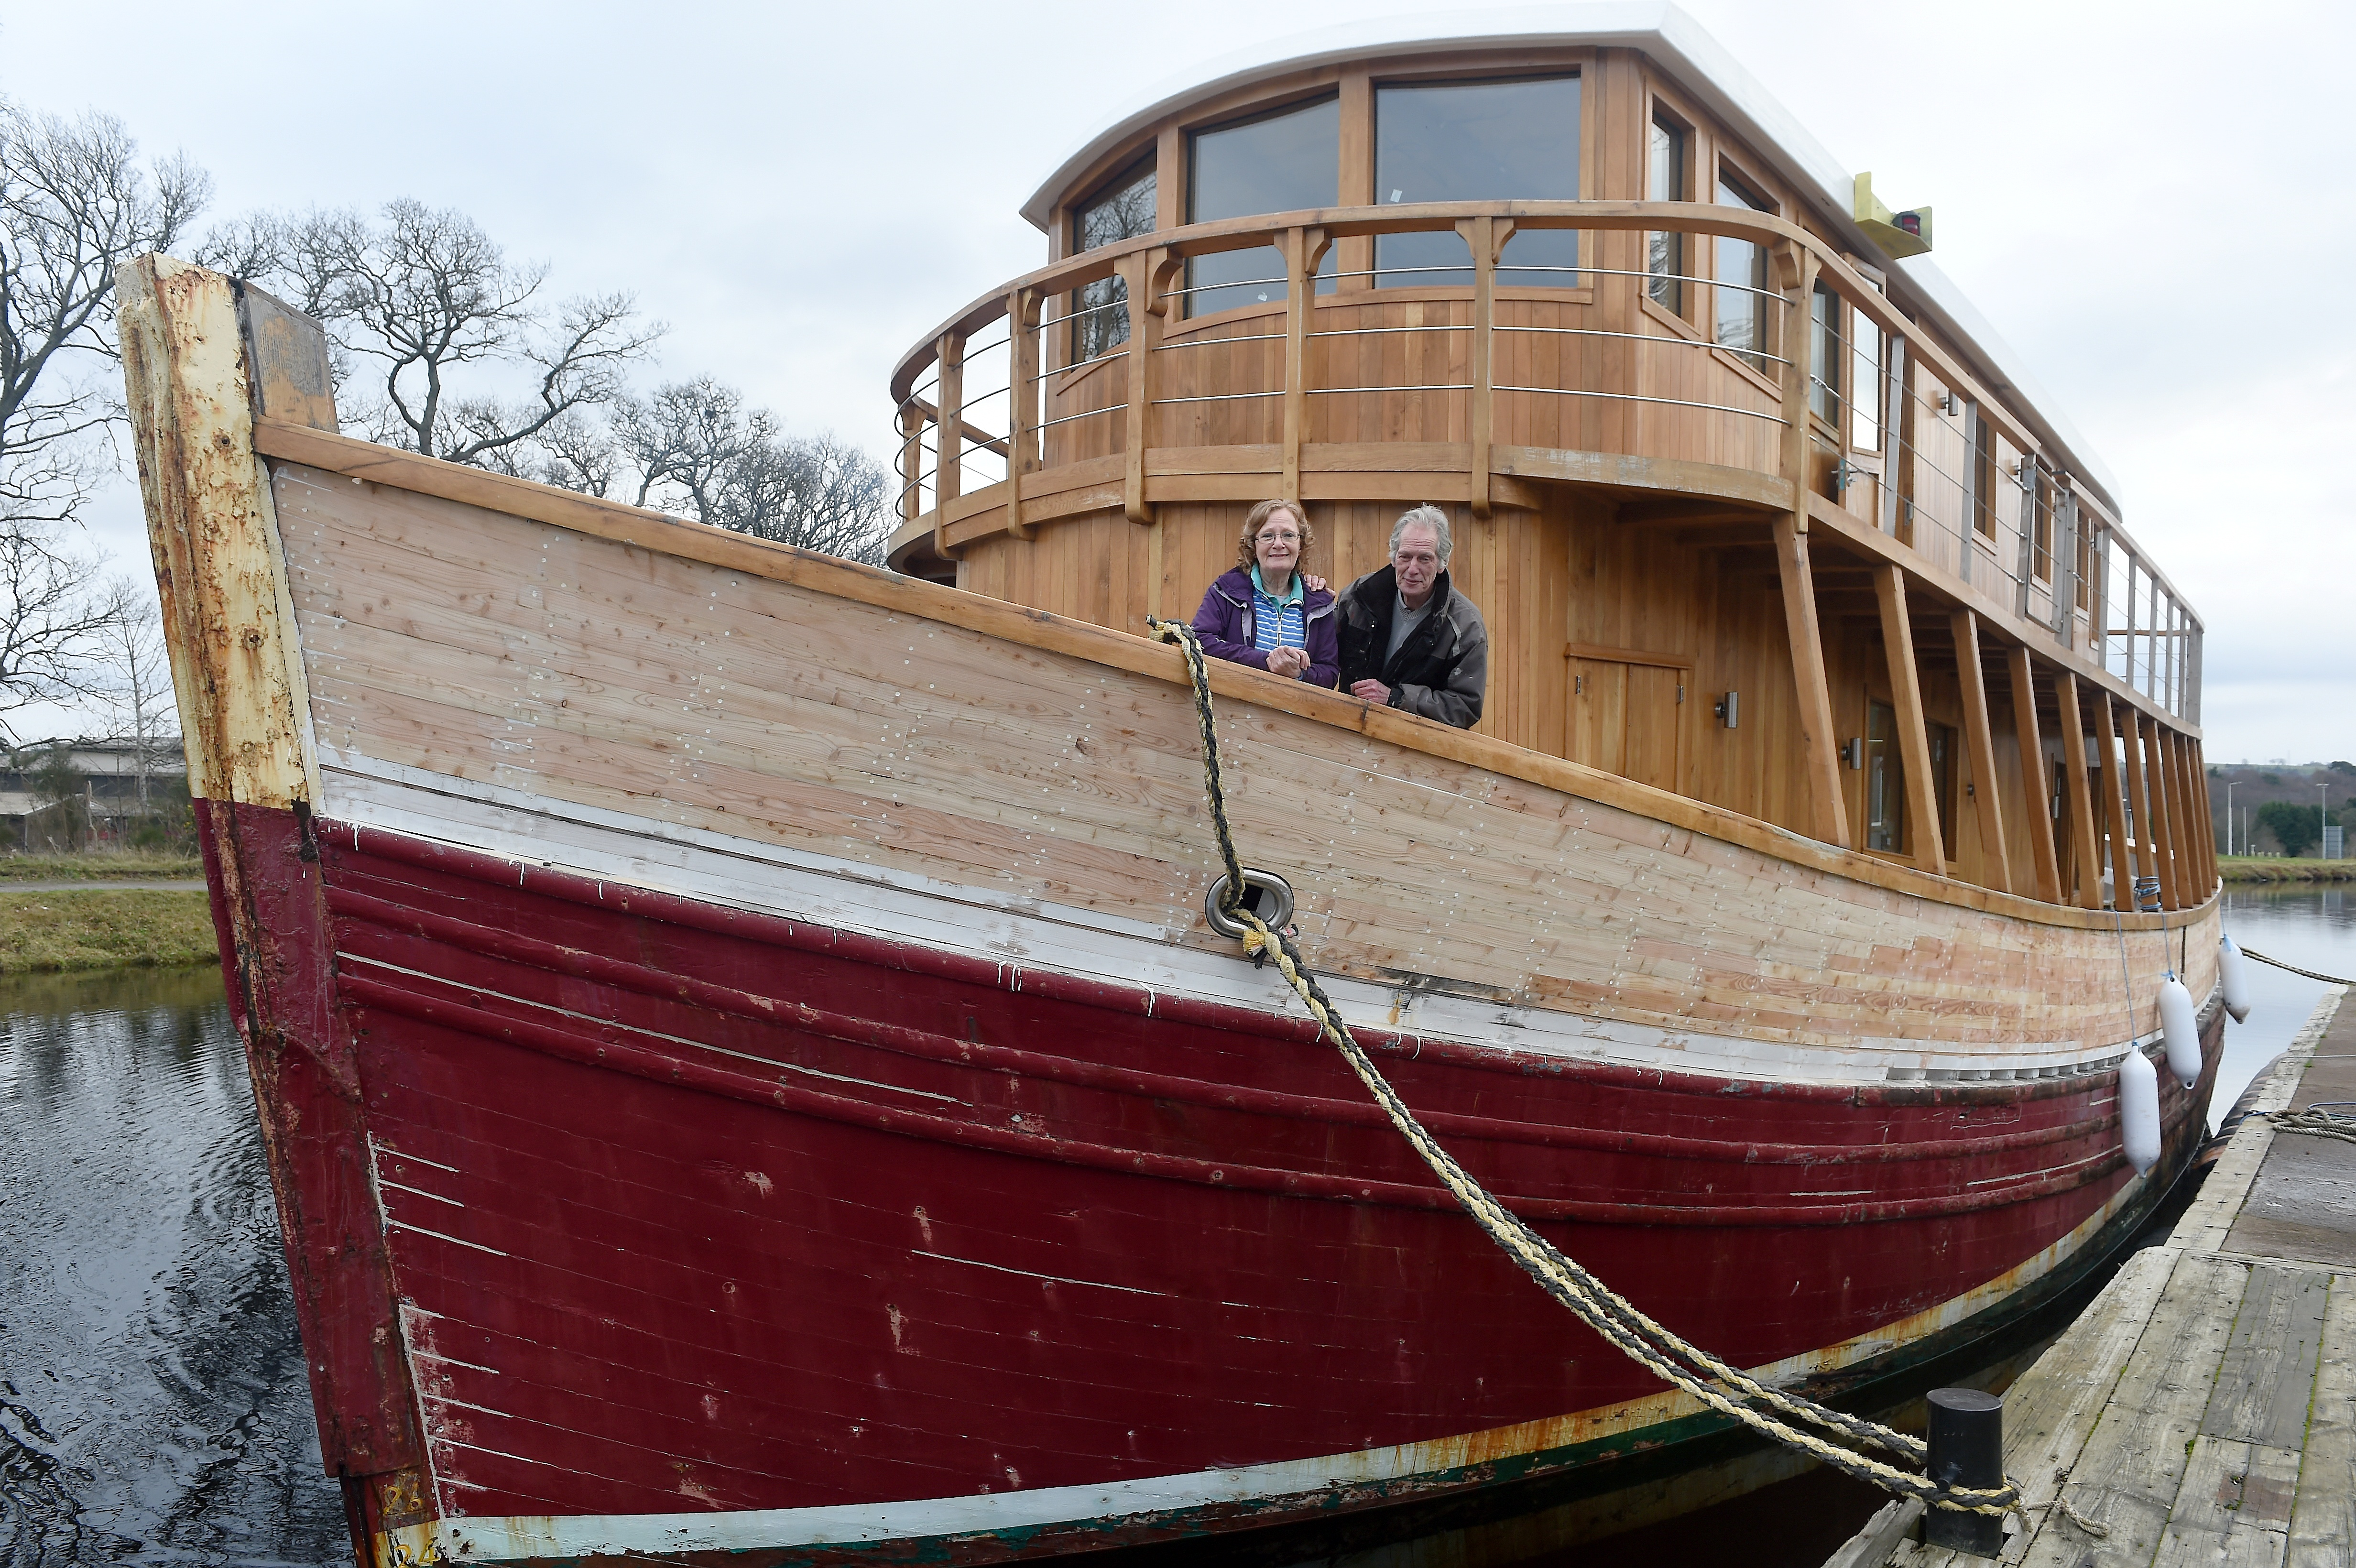 Gaby Monkhouse and her husband Gus Glue with their vessel 'Highland Lassie' on the Caledonian Canal at Inverness.